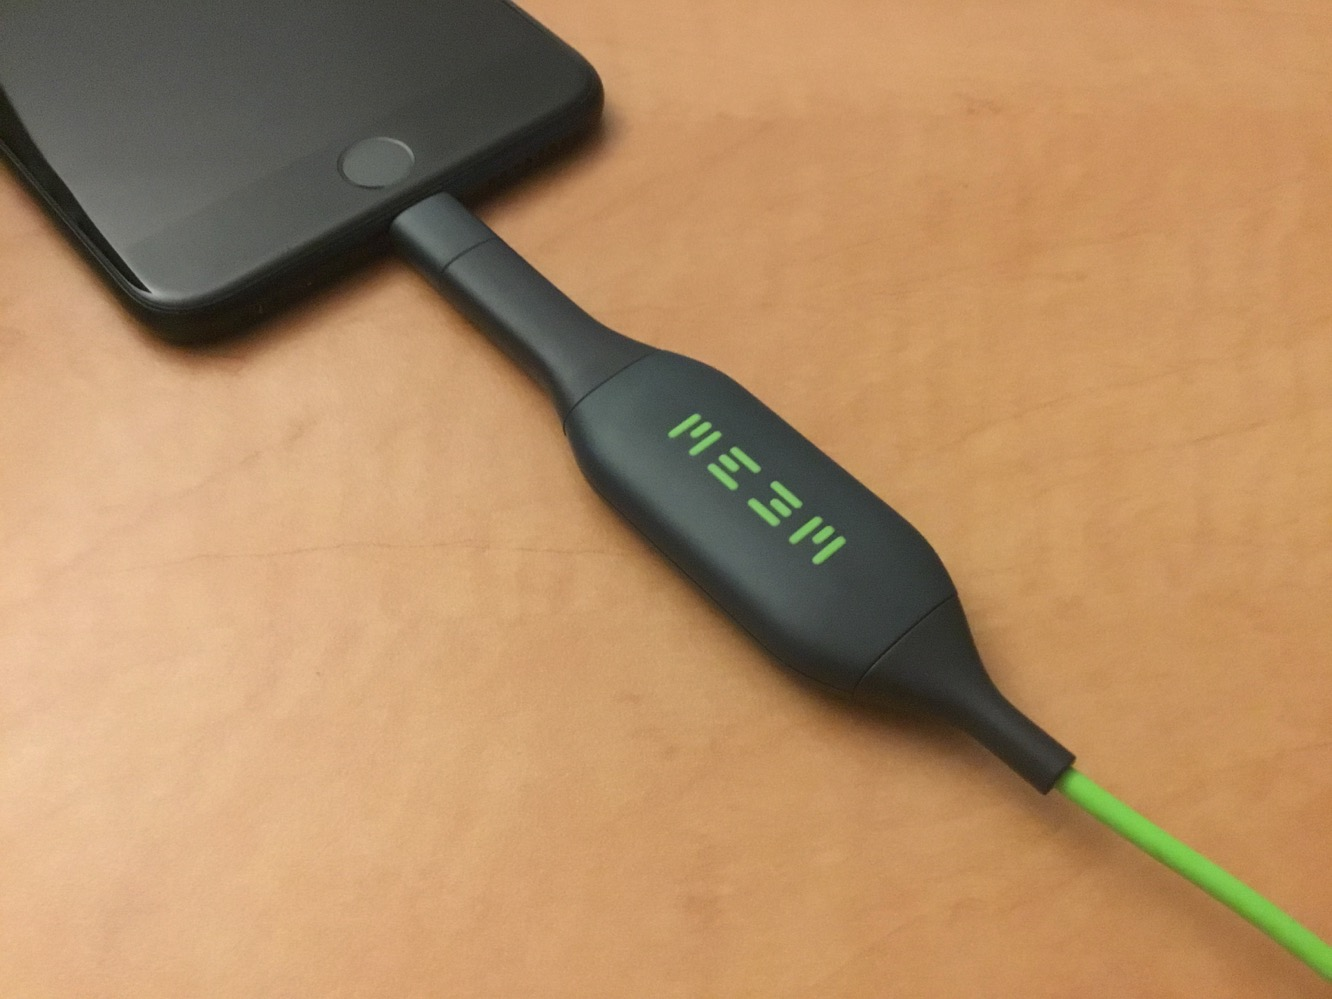 Review: Meem Memory Lightning Backup and Charging Cable